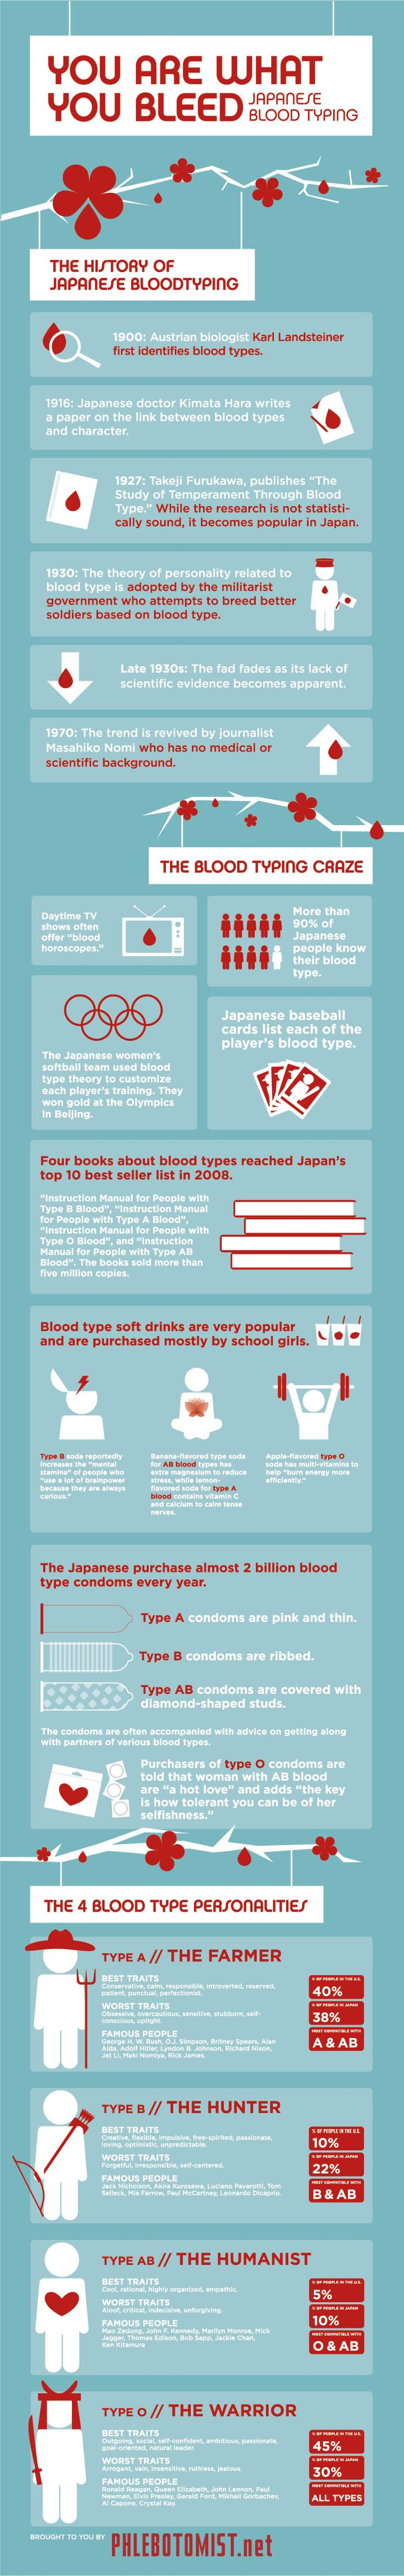 Japanese bloodtyping - why blood types are important to the Japanese (other than health reasons)